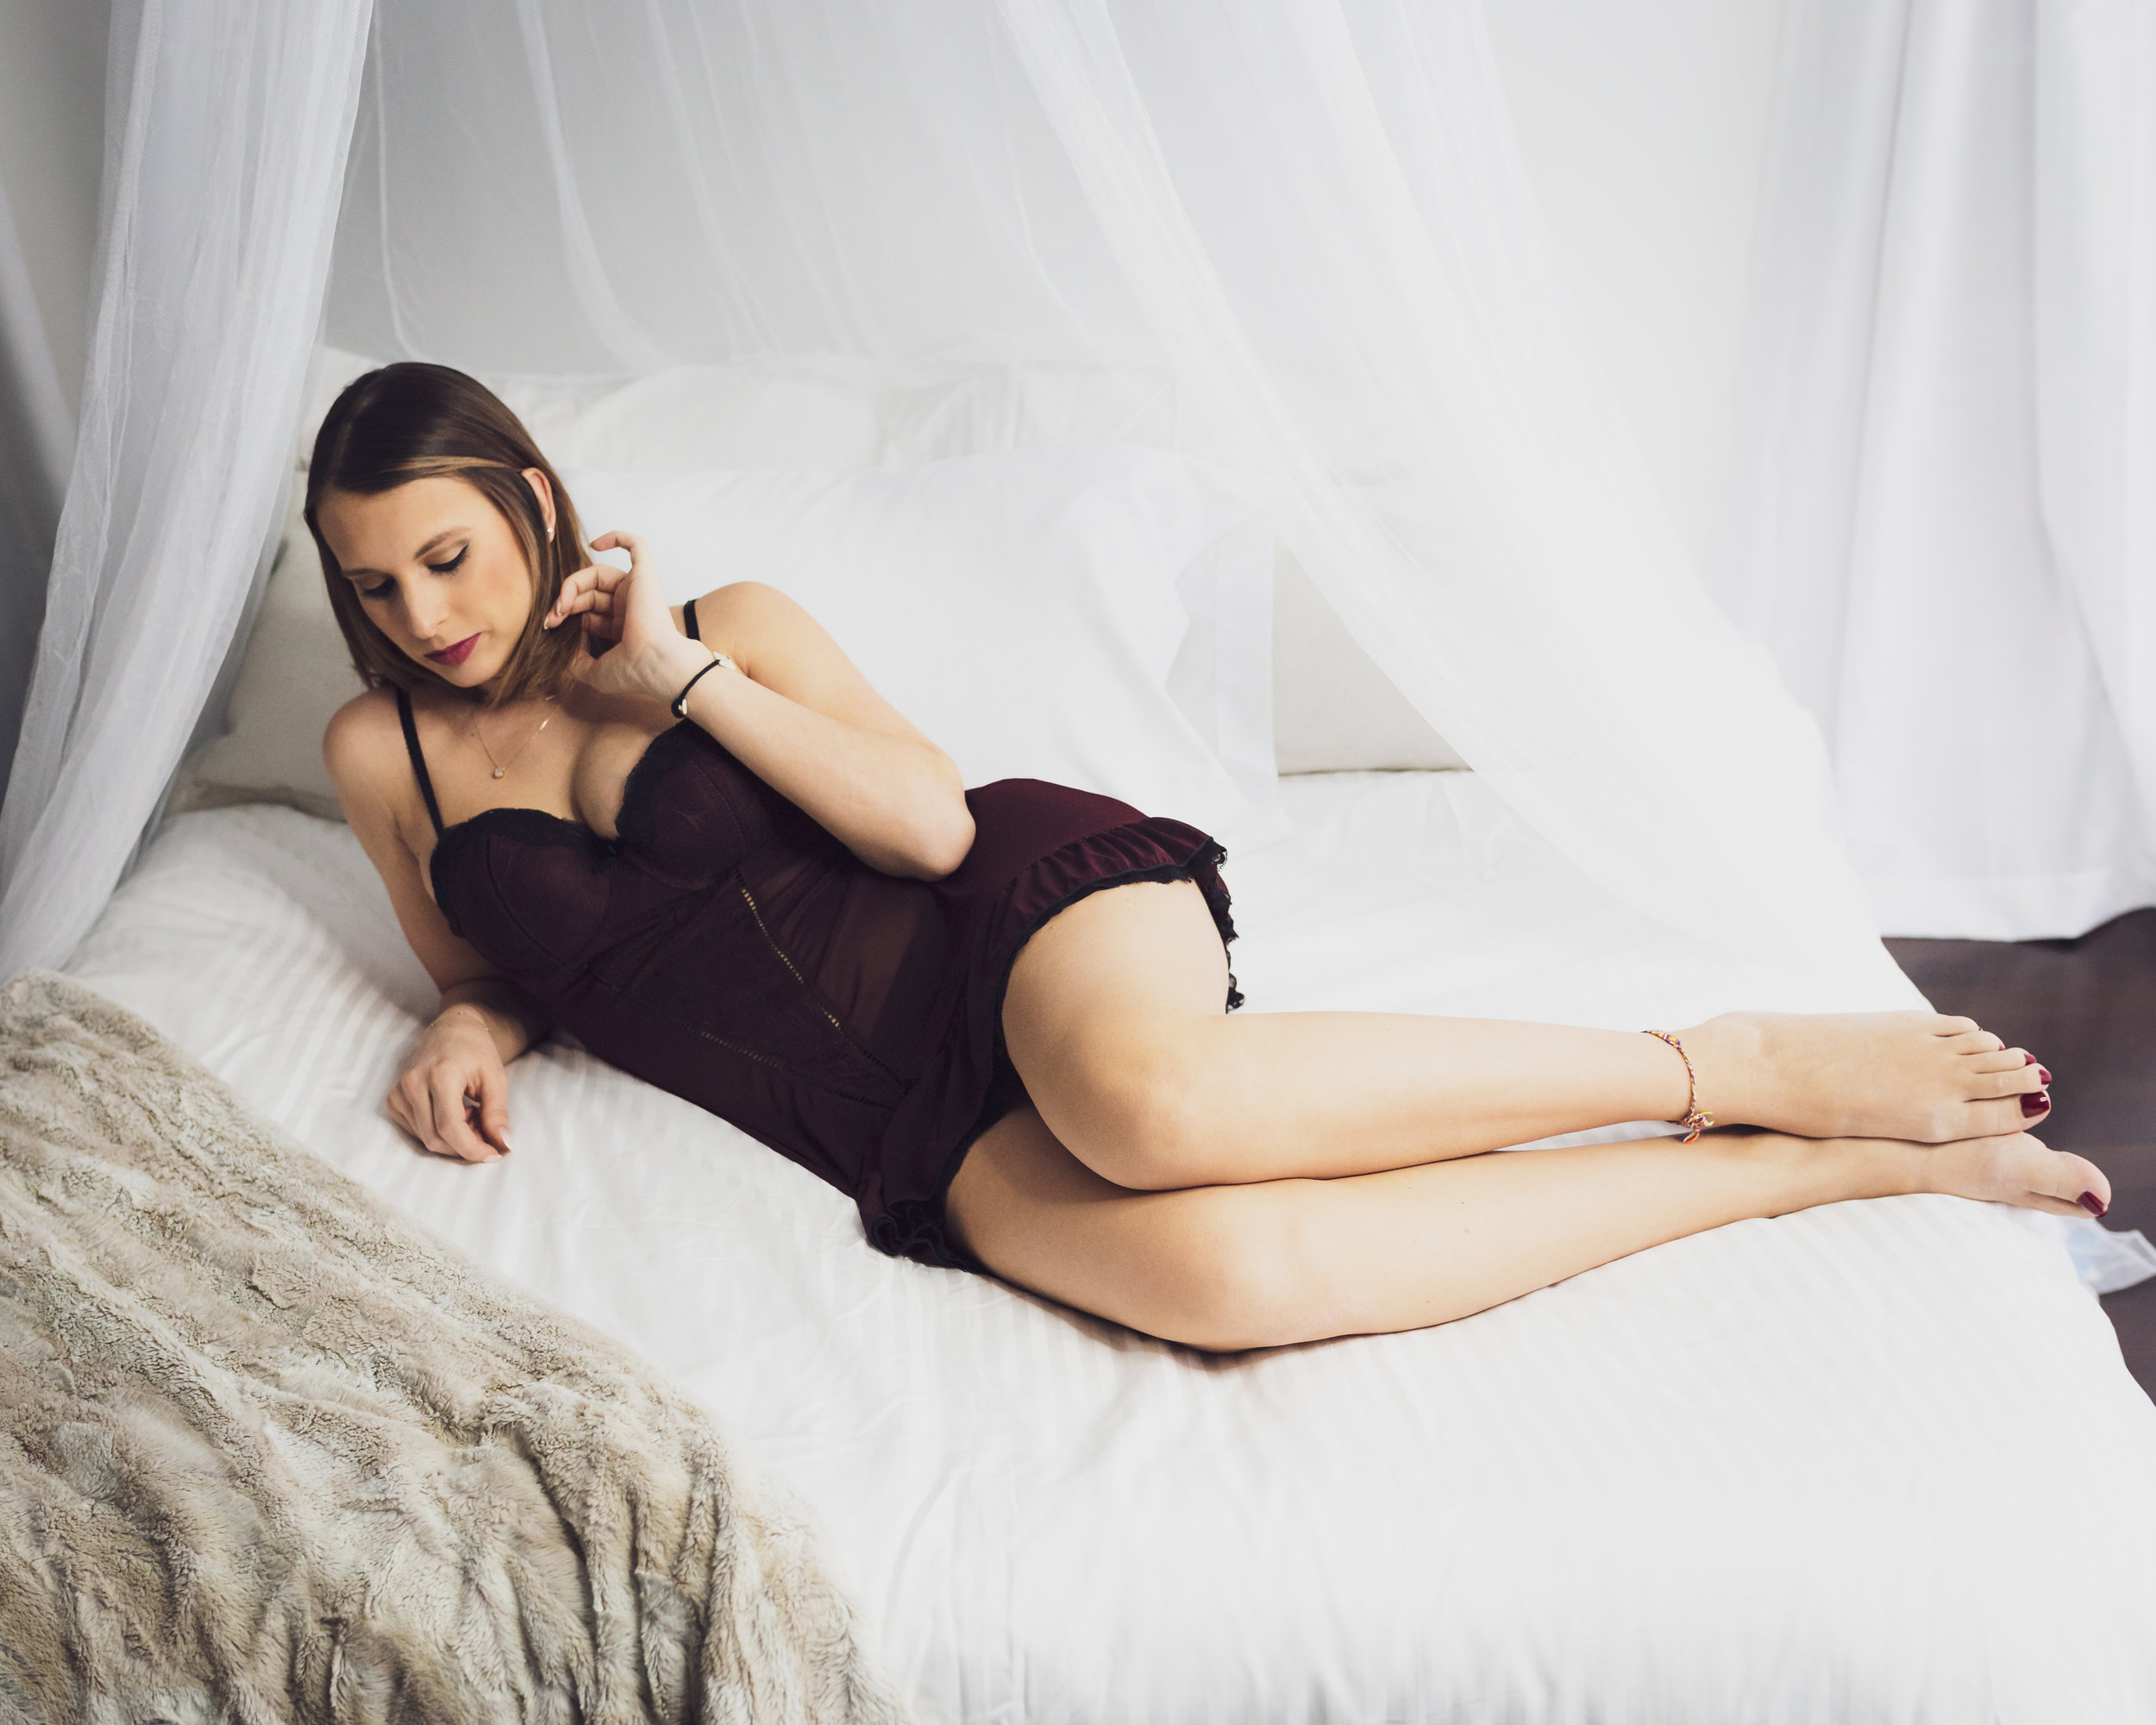 Nine19 Photography Raleigh NC Boudoir Photographer-0240.jpg